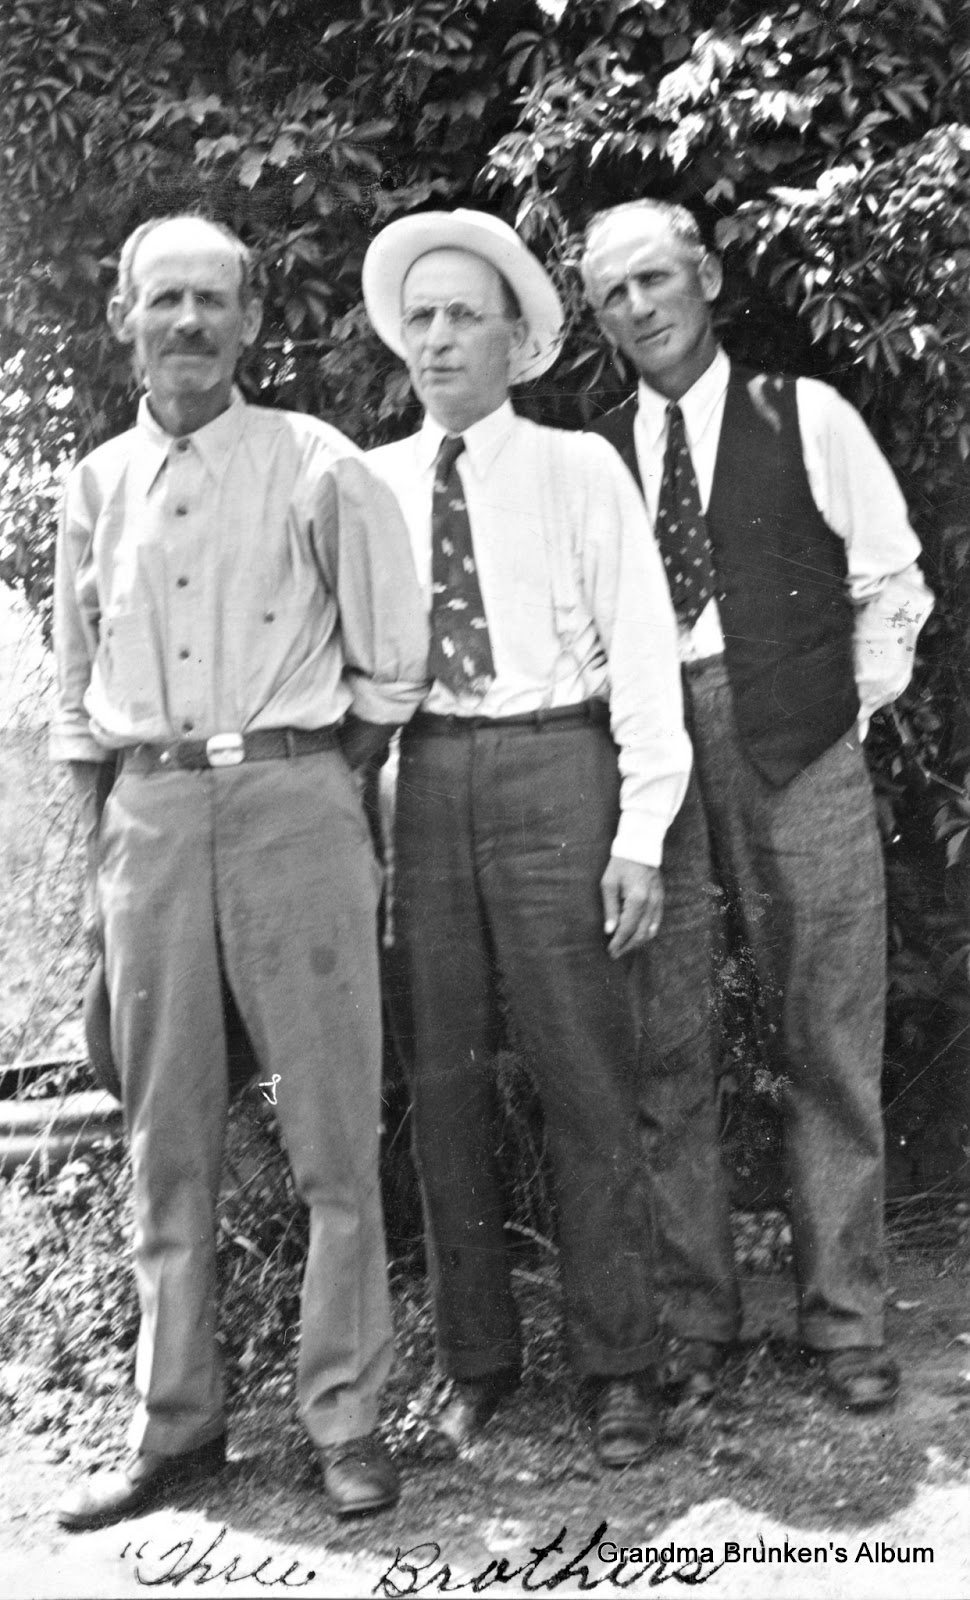 Three Brothers - William, Louie and Gus Brunken